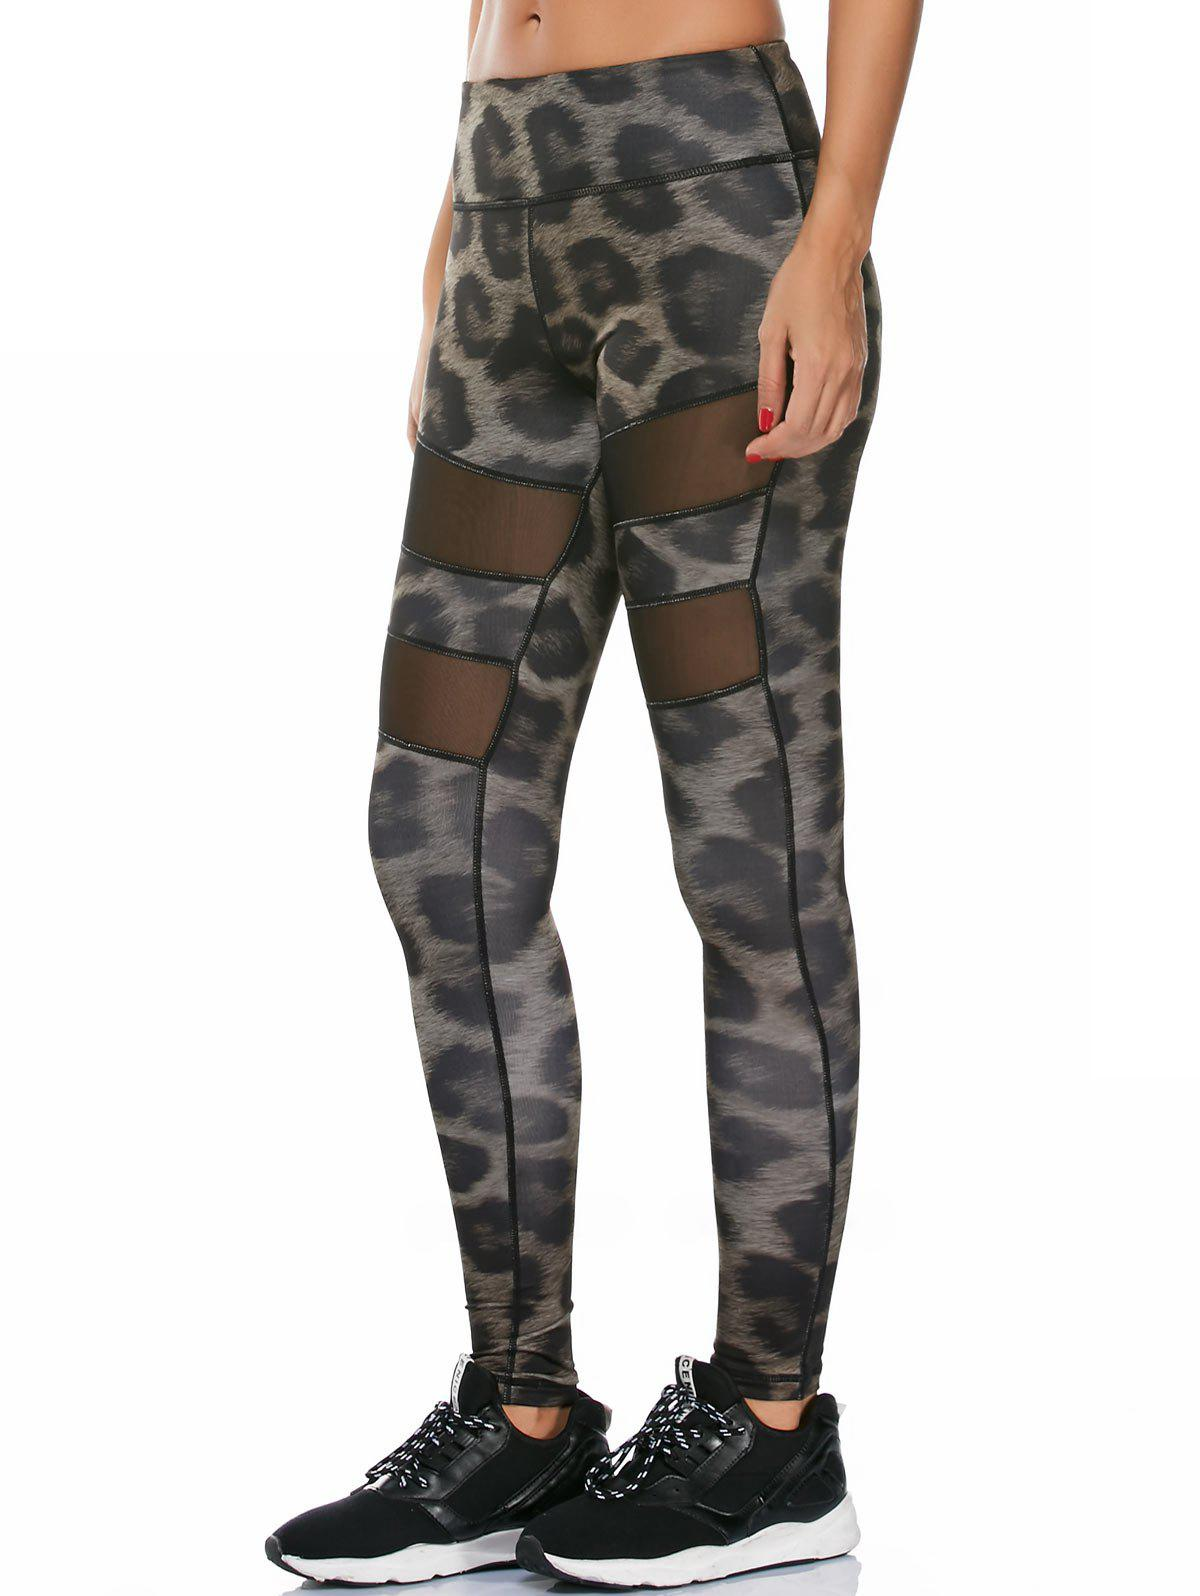 Snake Printed Workout Leggings with Mesh - multicolor M